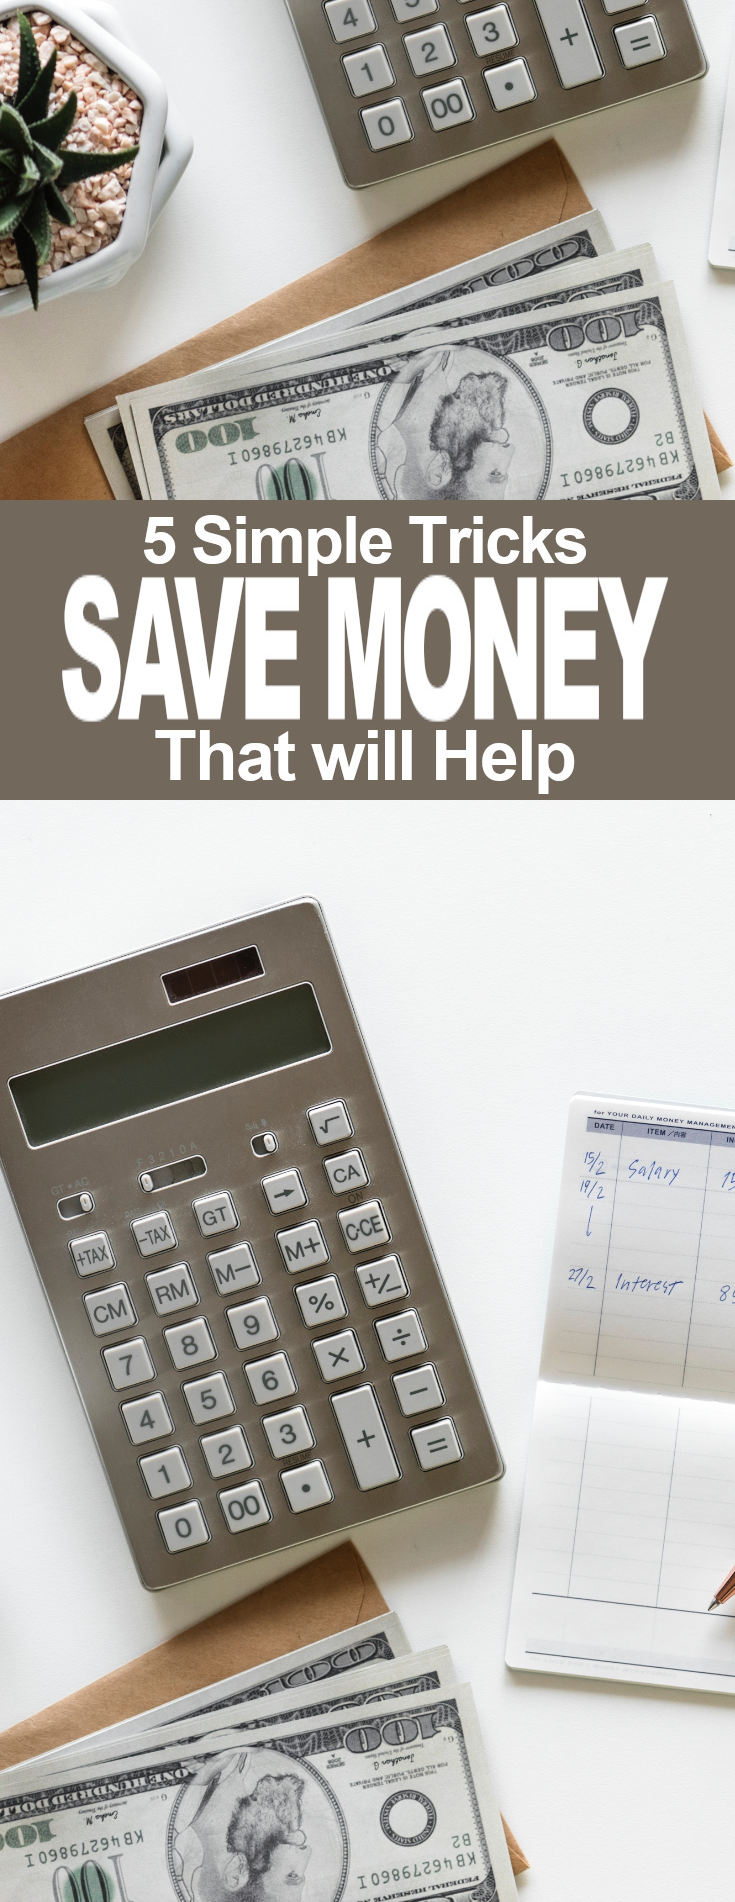 Five Simple Tricks to Help You Save More Money- A Hippy and a Redneck Keep reading to learn my five simple tricks to help you save more money… no matter how much you make. | Budget | Money | Savings | Homemaking | Finance | #budget #money #savings #homemaking #finance #nestegg #budgeting #moneymatters #savingmoney #moneyandfinance #homemaking #homesteading #grocerybudget #moneysavingtips #ahippyandaredneck